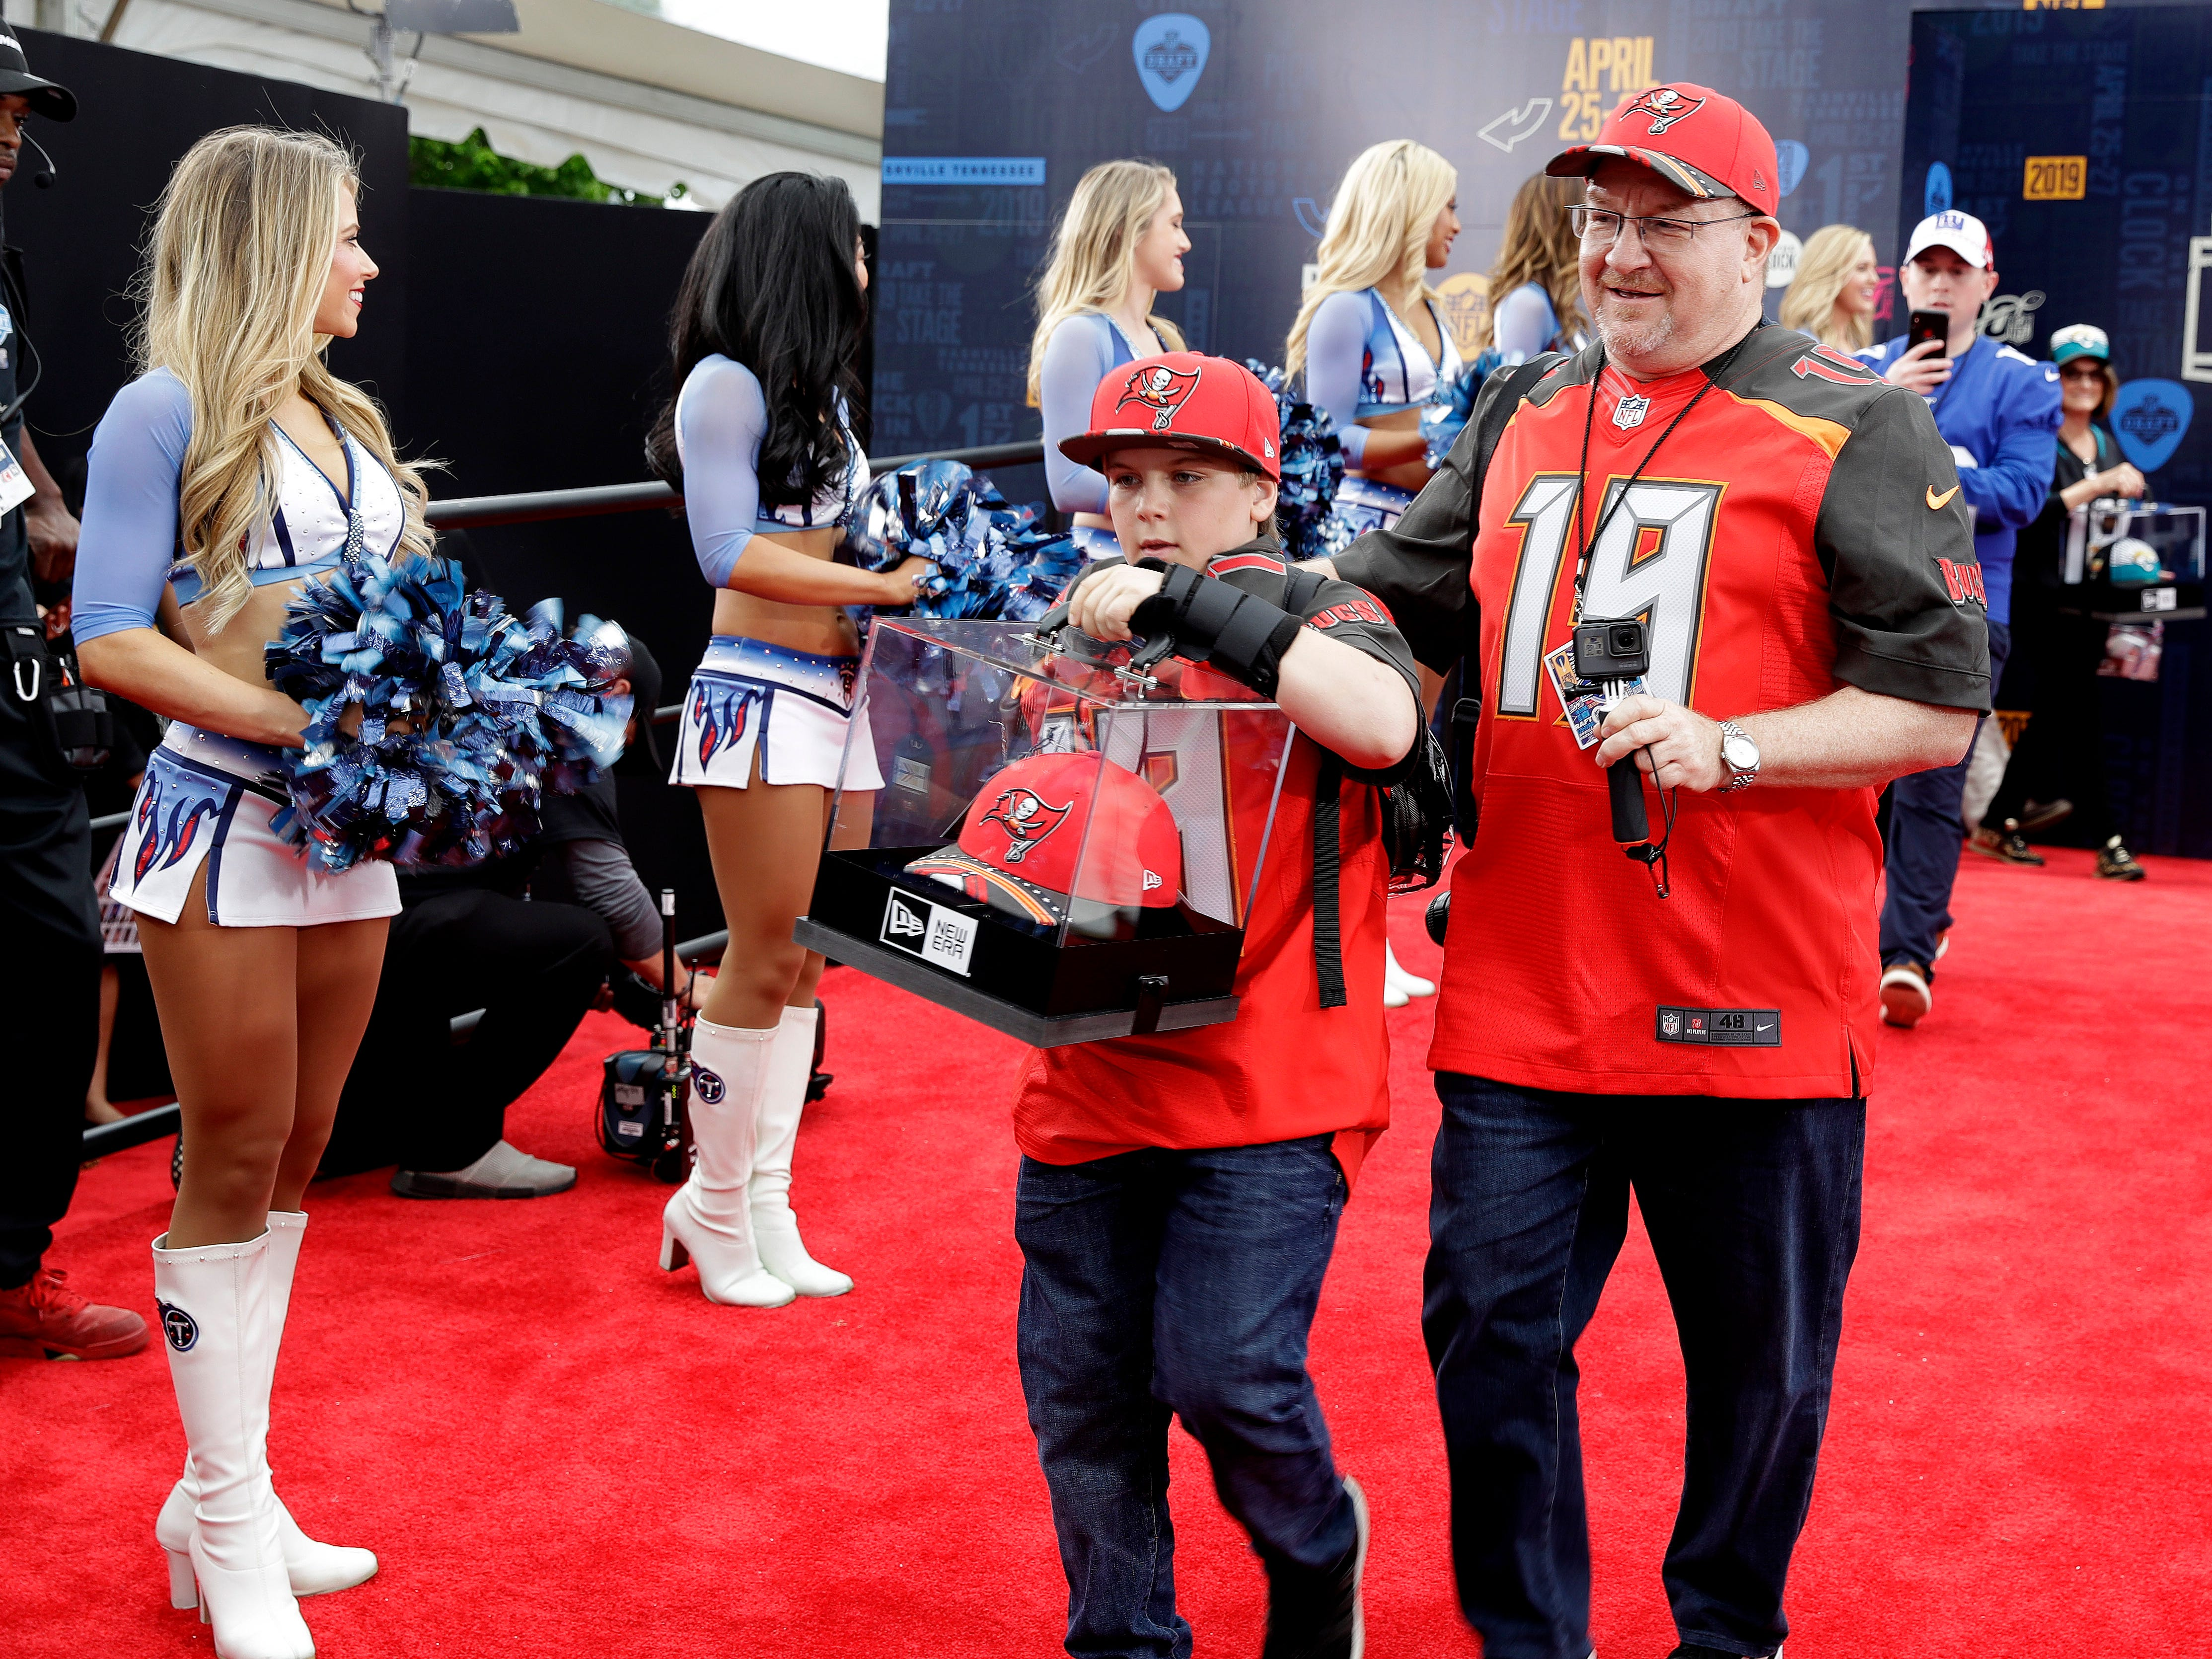 Fans walk the red carpet ahead of the first round of the draft.